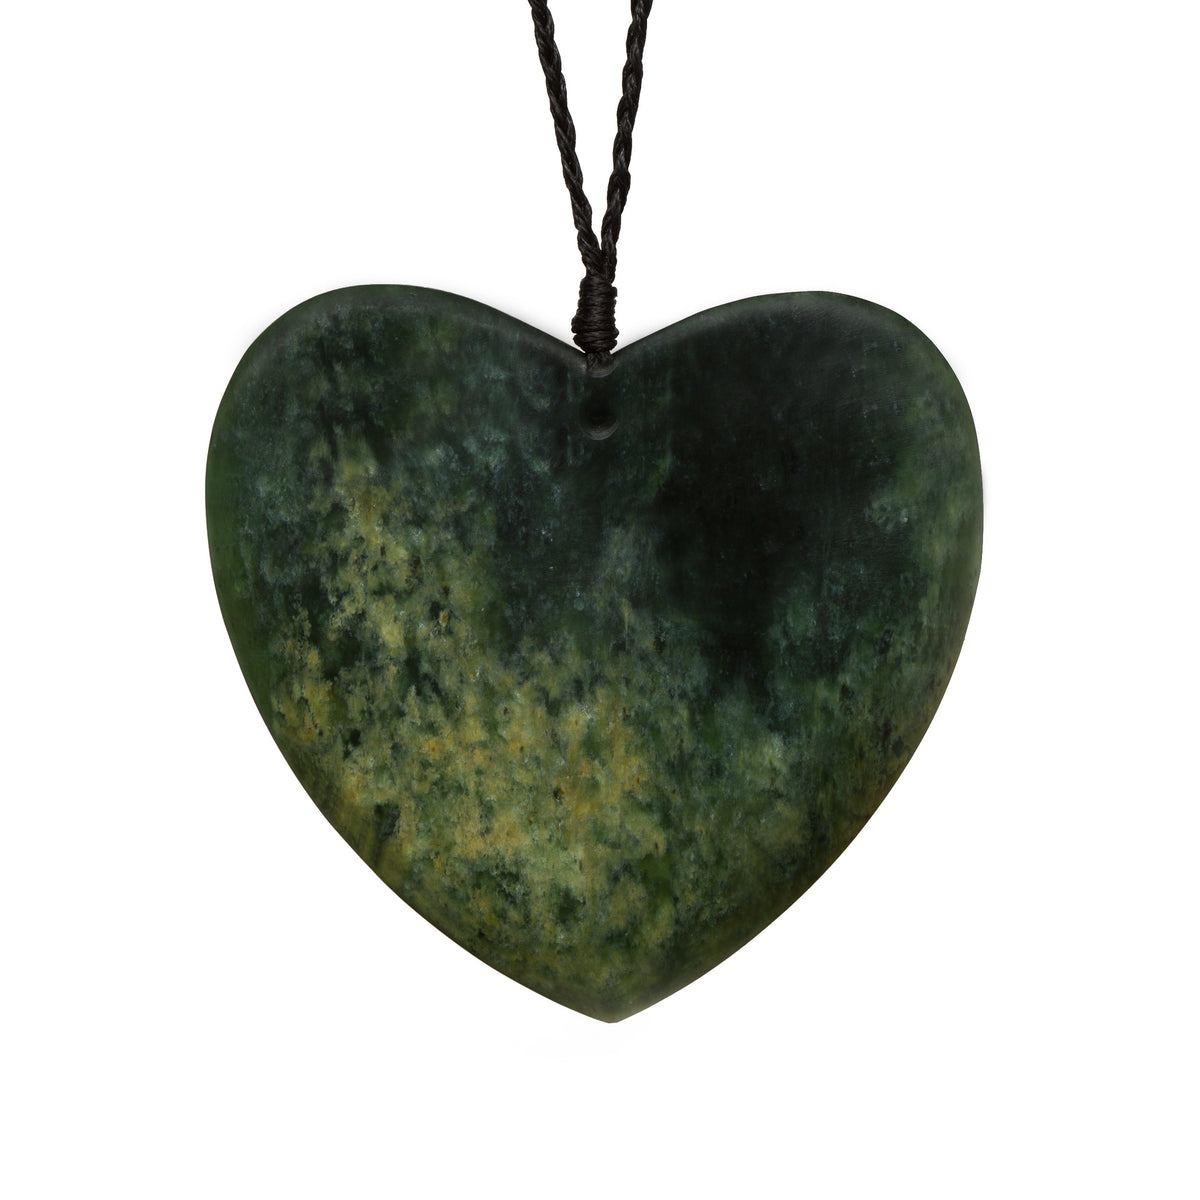 62mm x 65mm / New Zealand Pounamu // AKAHP498P-1